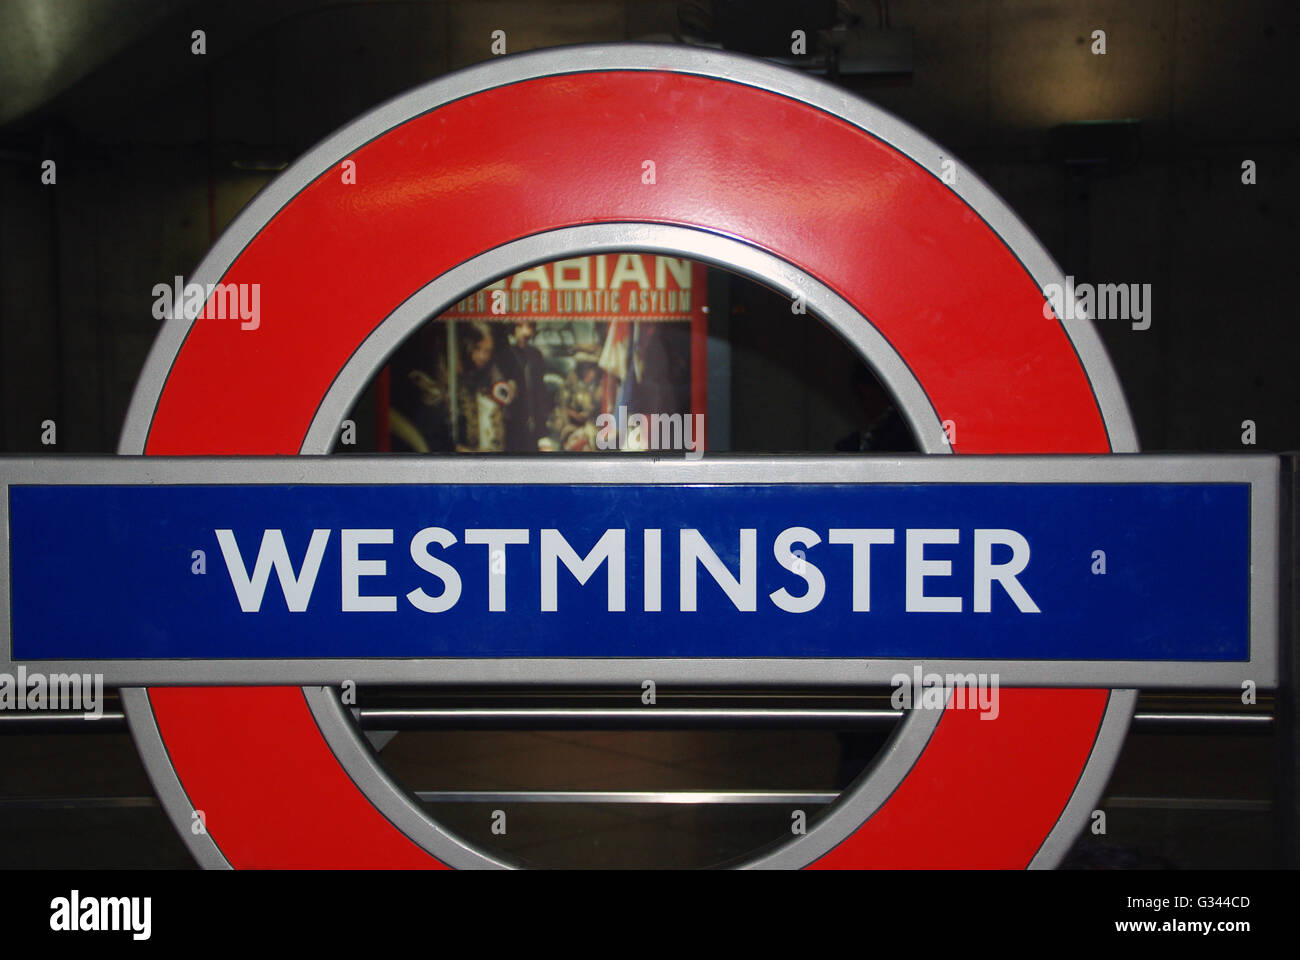 Westminster sign on London underground with museum poster in background - Stock Image